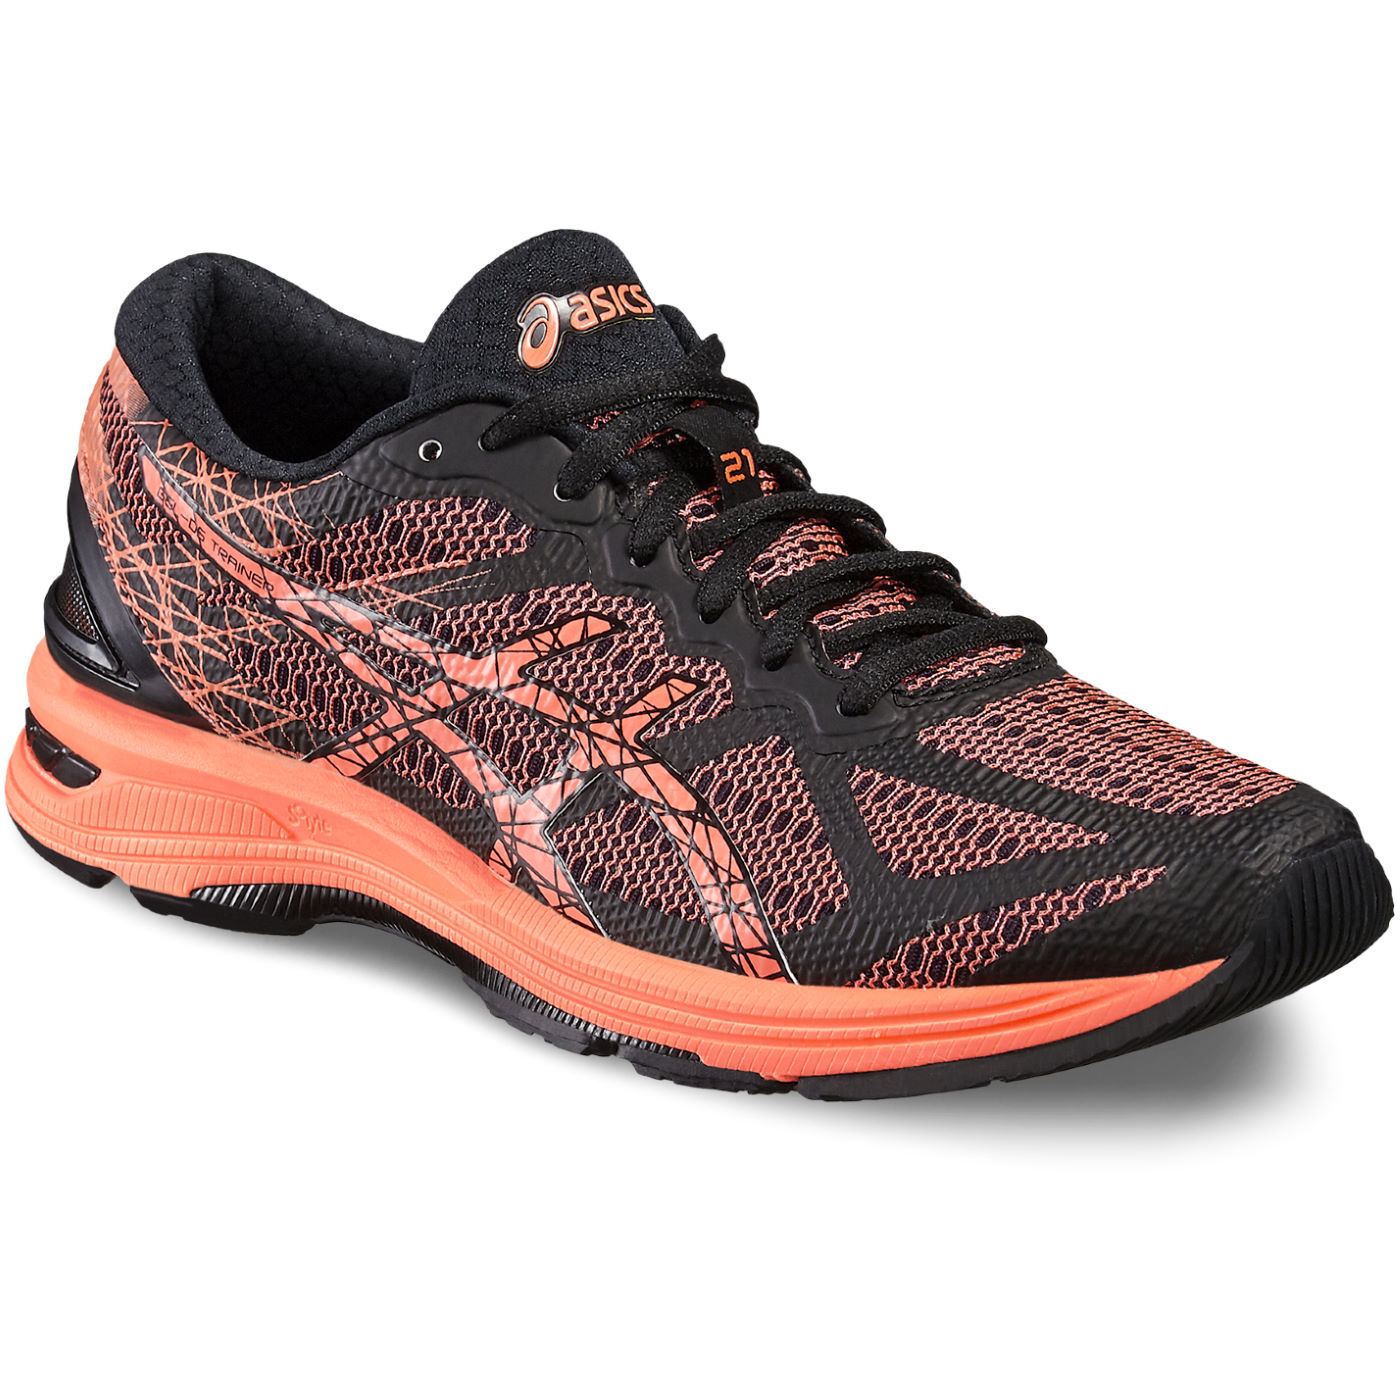 wiggle asics women 39 s gel ds trainer 21 shoes racing. Black Bedroom Furniture Sets. Home Design Ideas